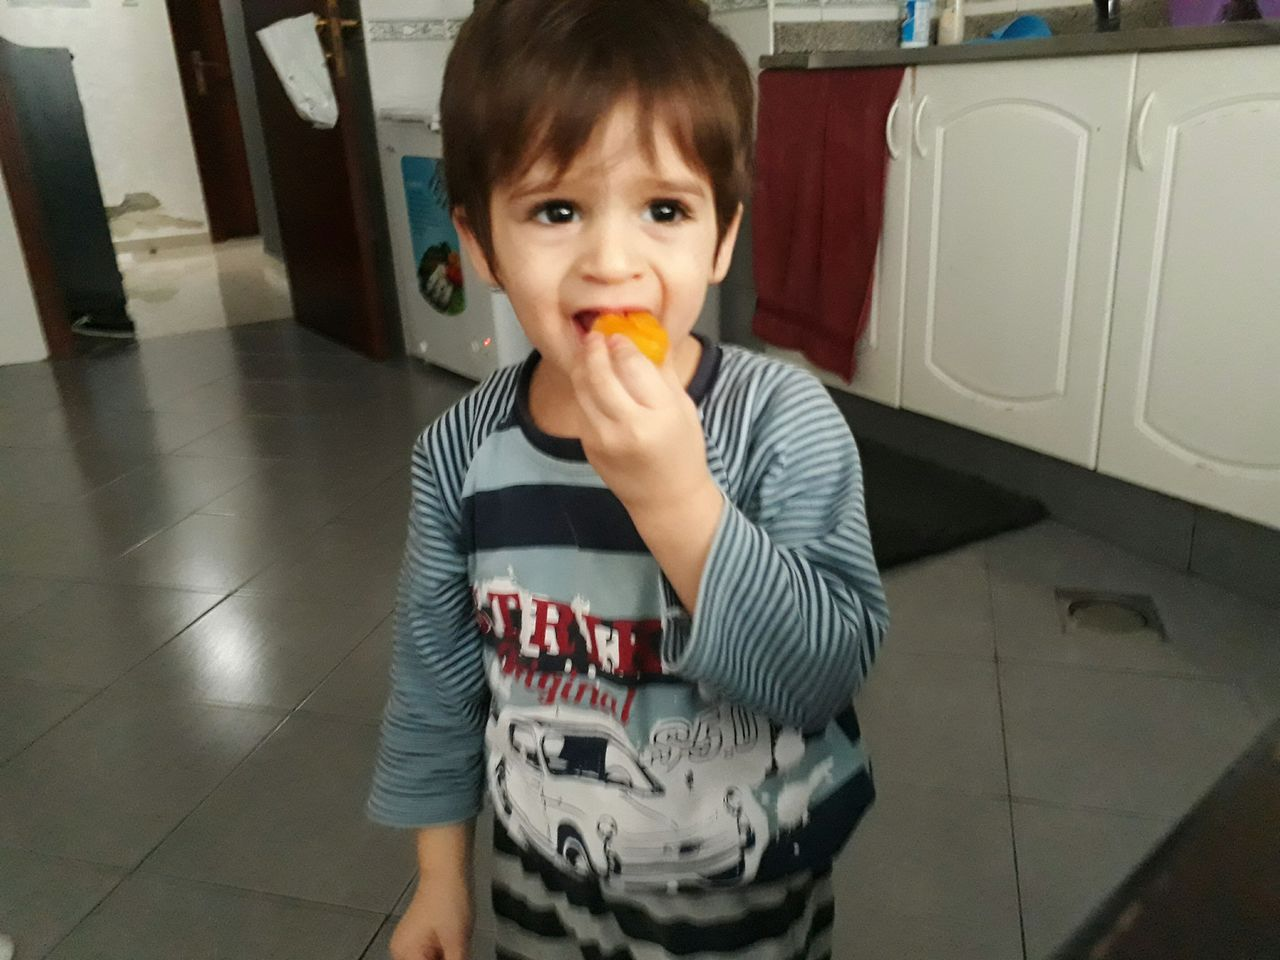 Boy Eating Food While Standing In Kitchen At Home